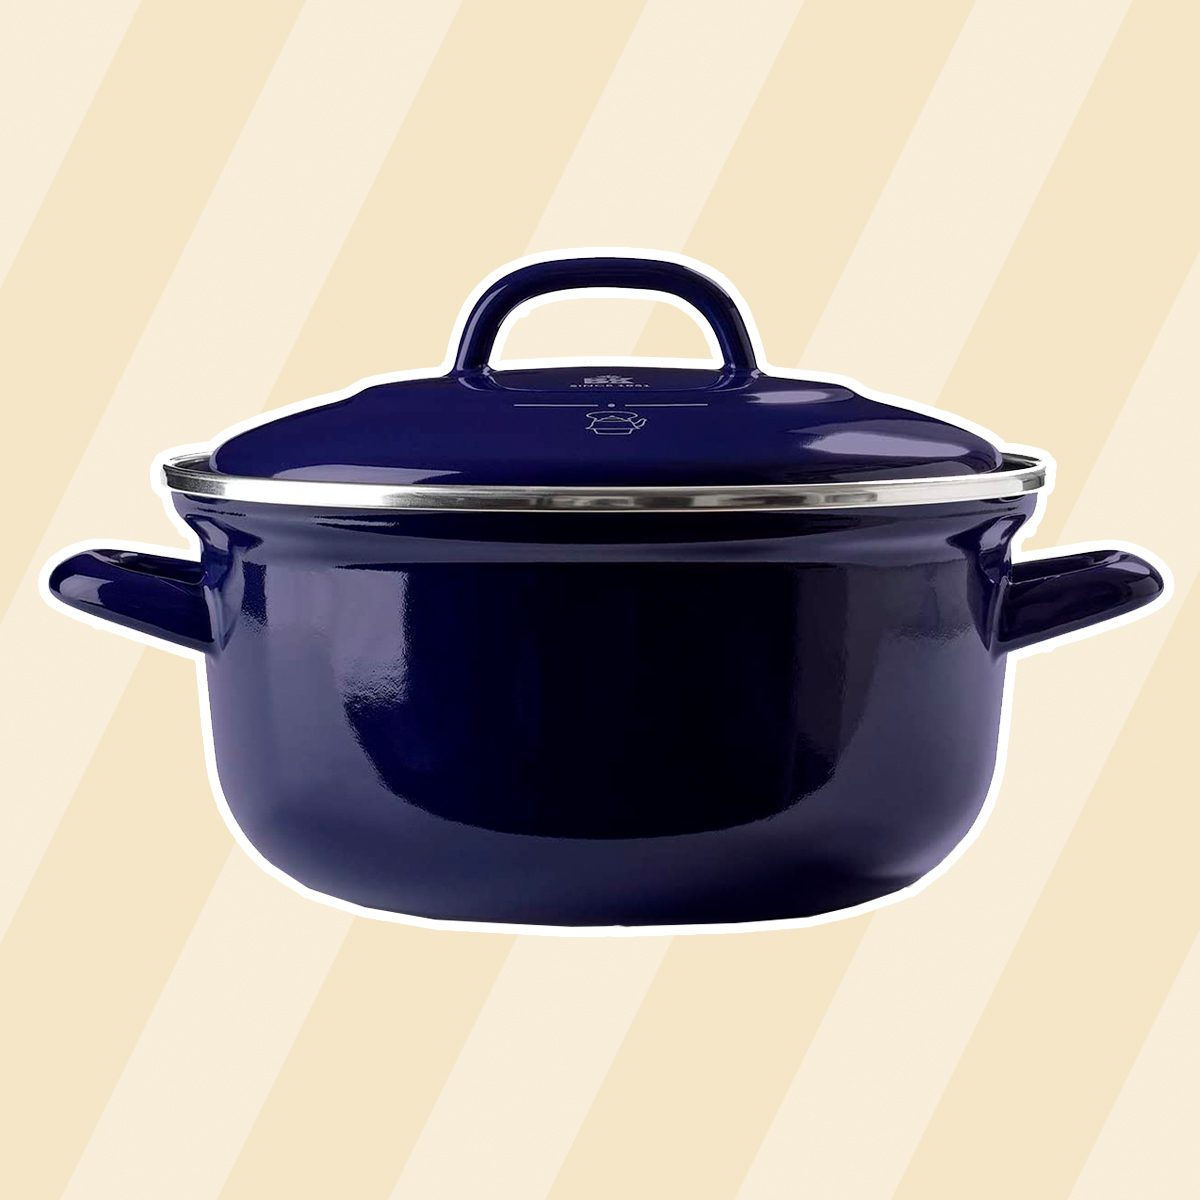 Lightweight: BK's Steel Dutch Oven